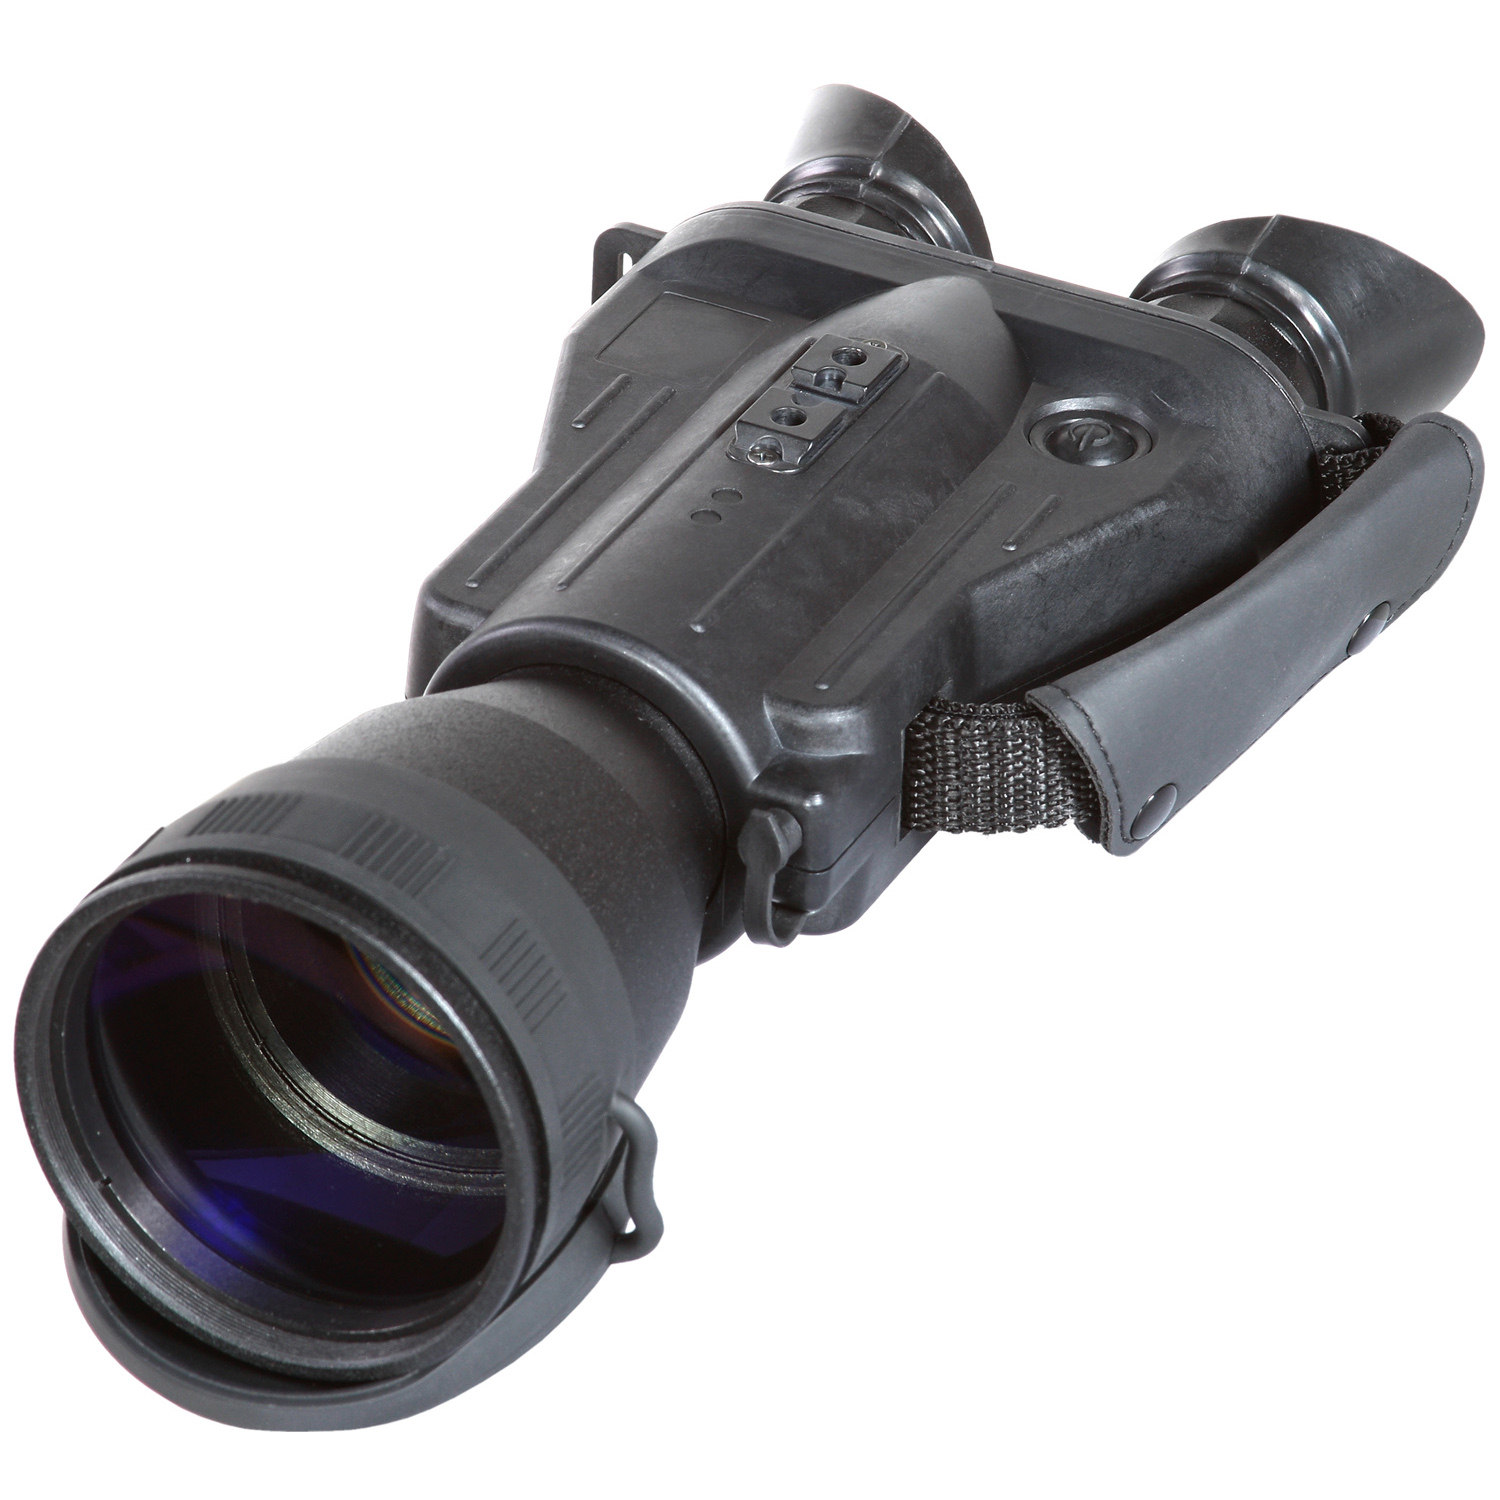 Armasight Discovery5x-HD Night Vision Binocular 5x High Definition Generation 2+, 51-72 lp mm by Overstock